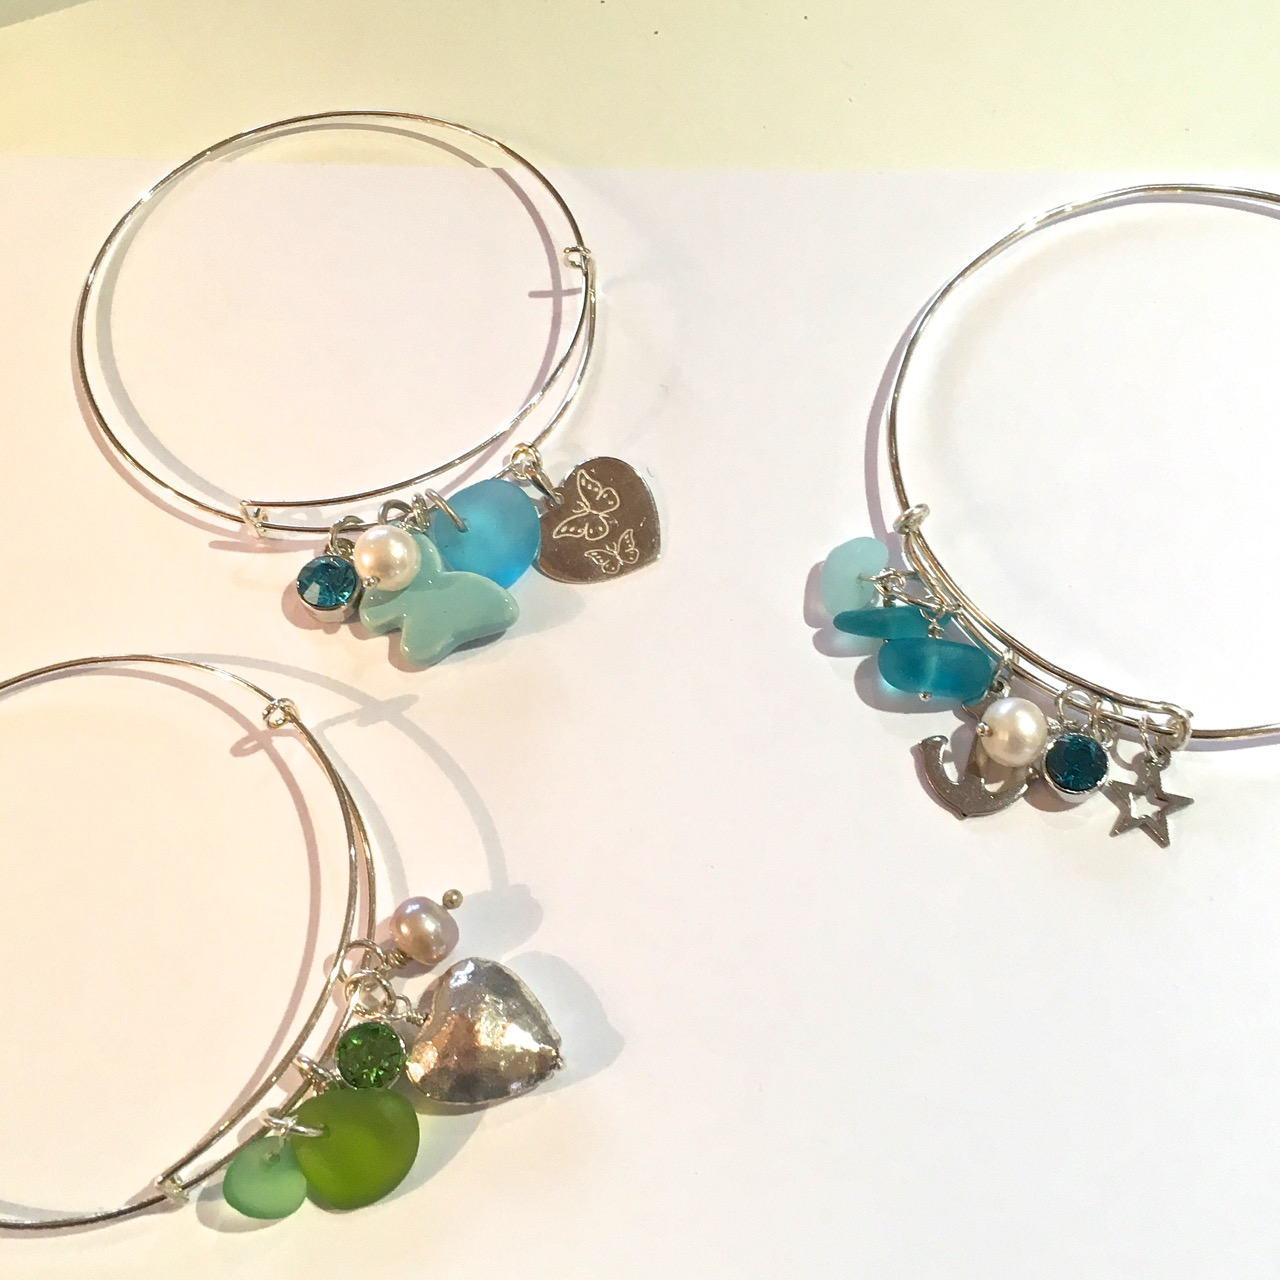 Sea Glass Adjustable Bangle SALE 30% (£28)